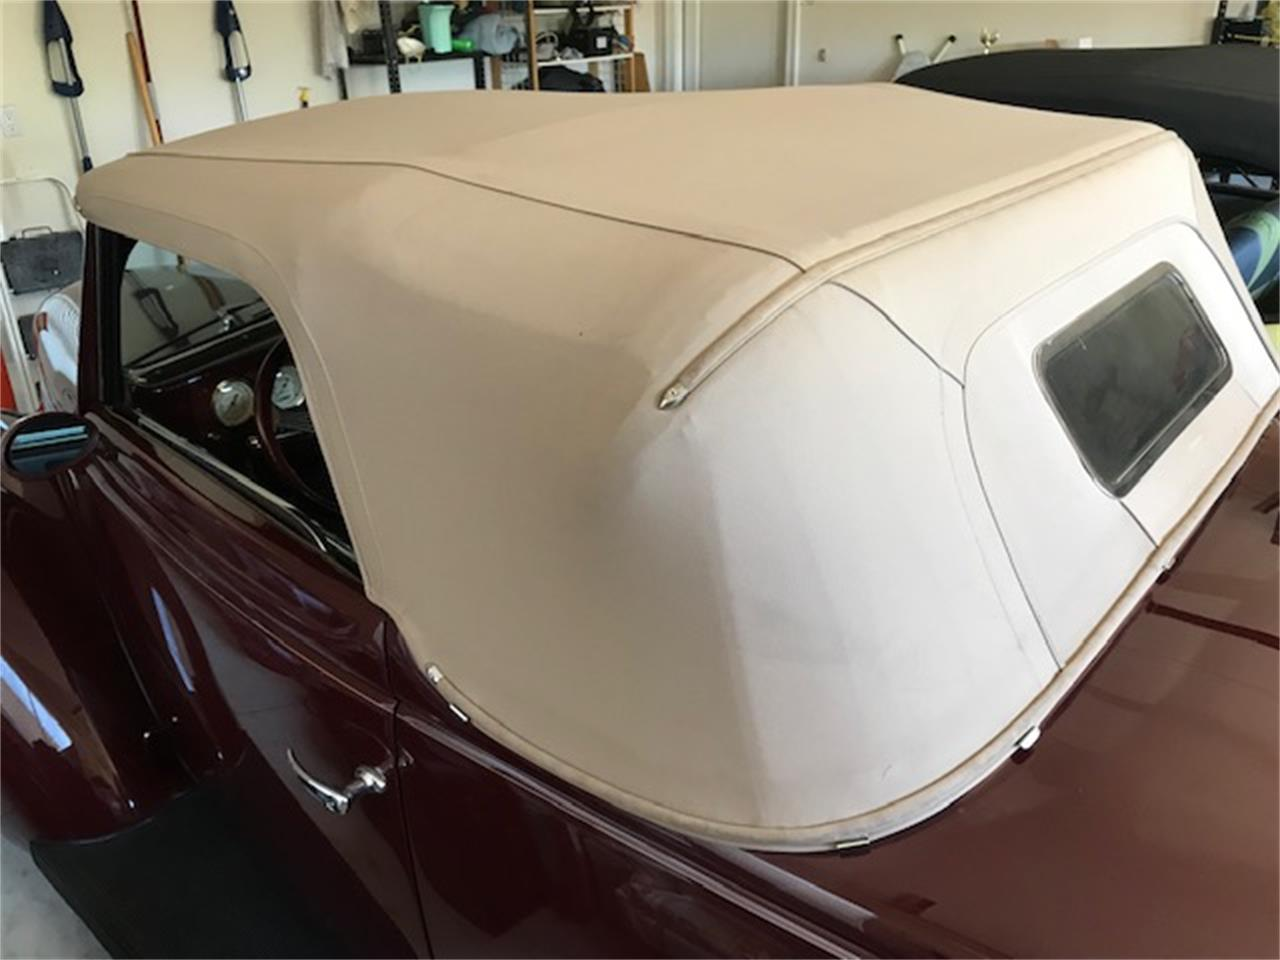 Large Picture of '37 Ford Cabriolet located in Paso robles California - $55,000.00 Offered by a Private Seller - QTU3